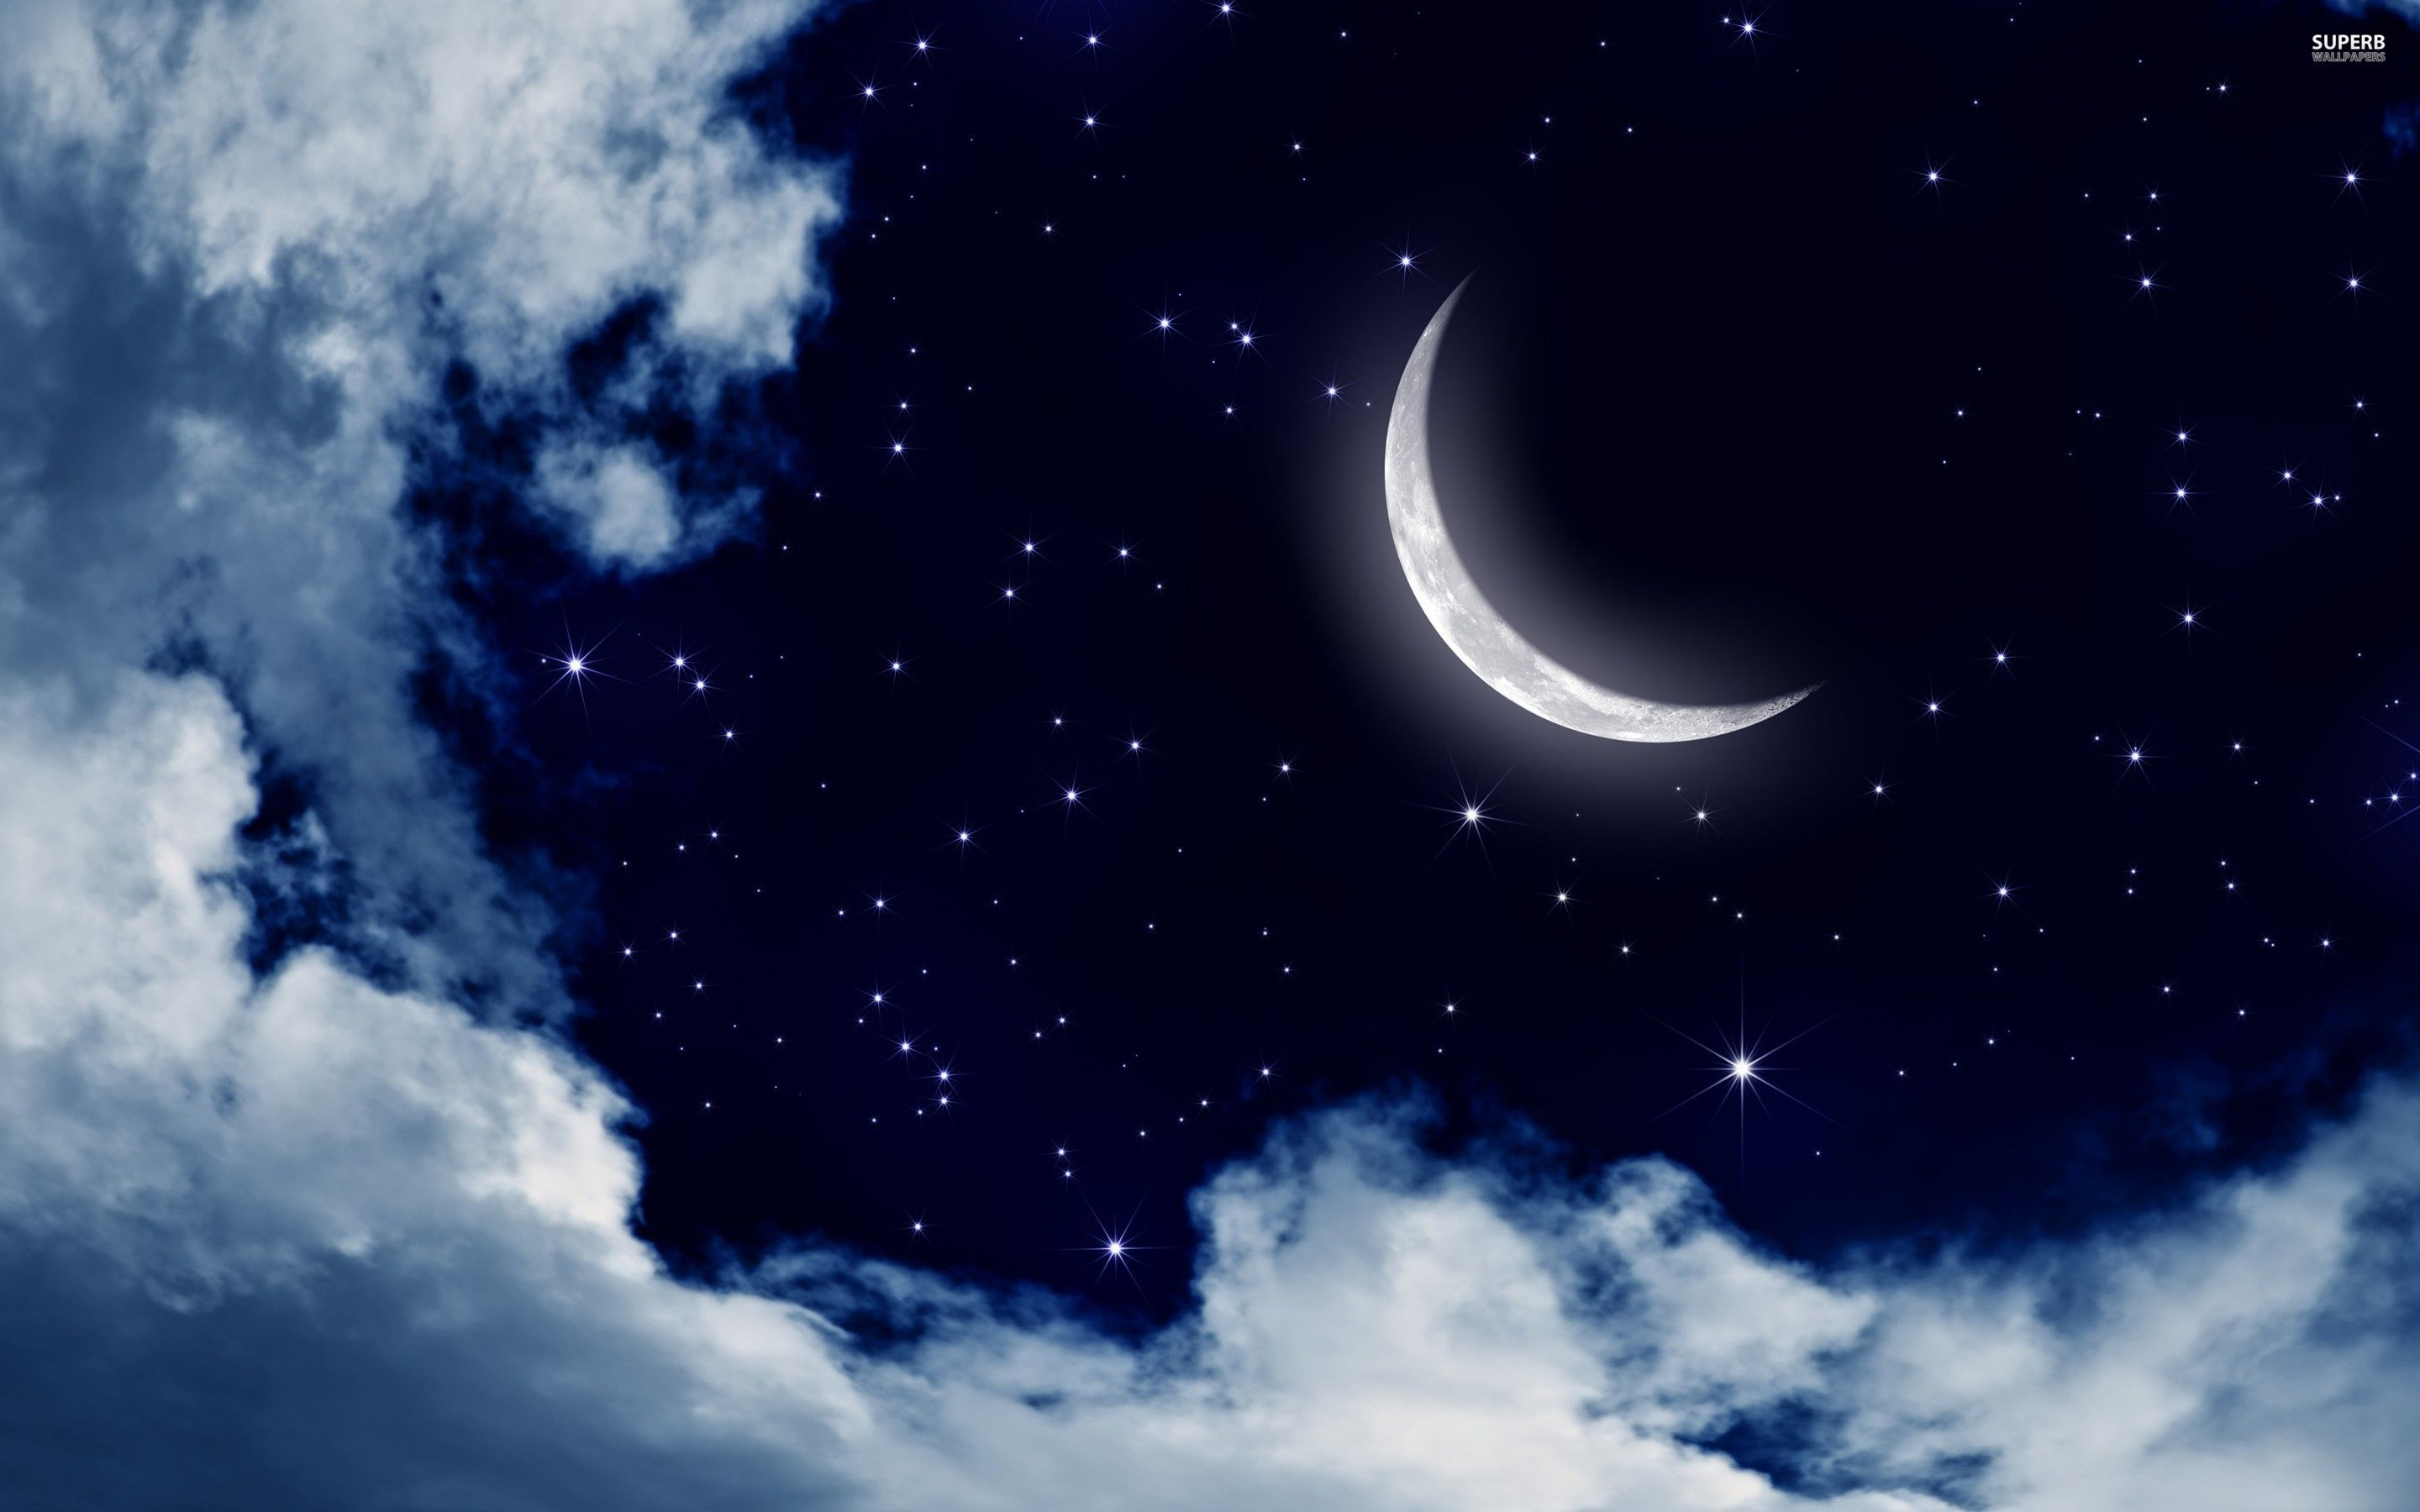 Moon And Stars In The Sky Digital Art Wallpaper Moon And Stars Wallpaper Star Wallpaper Sky Moon